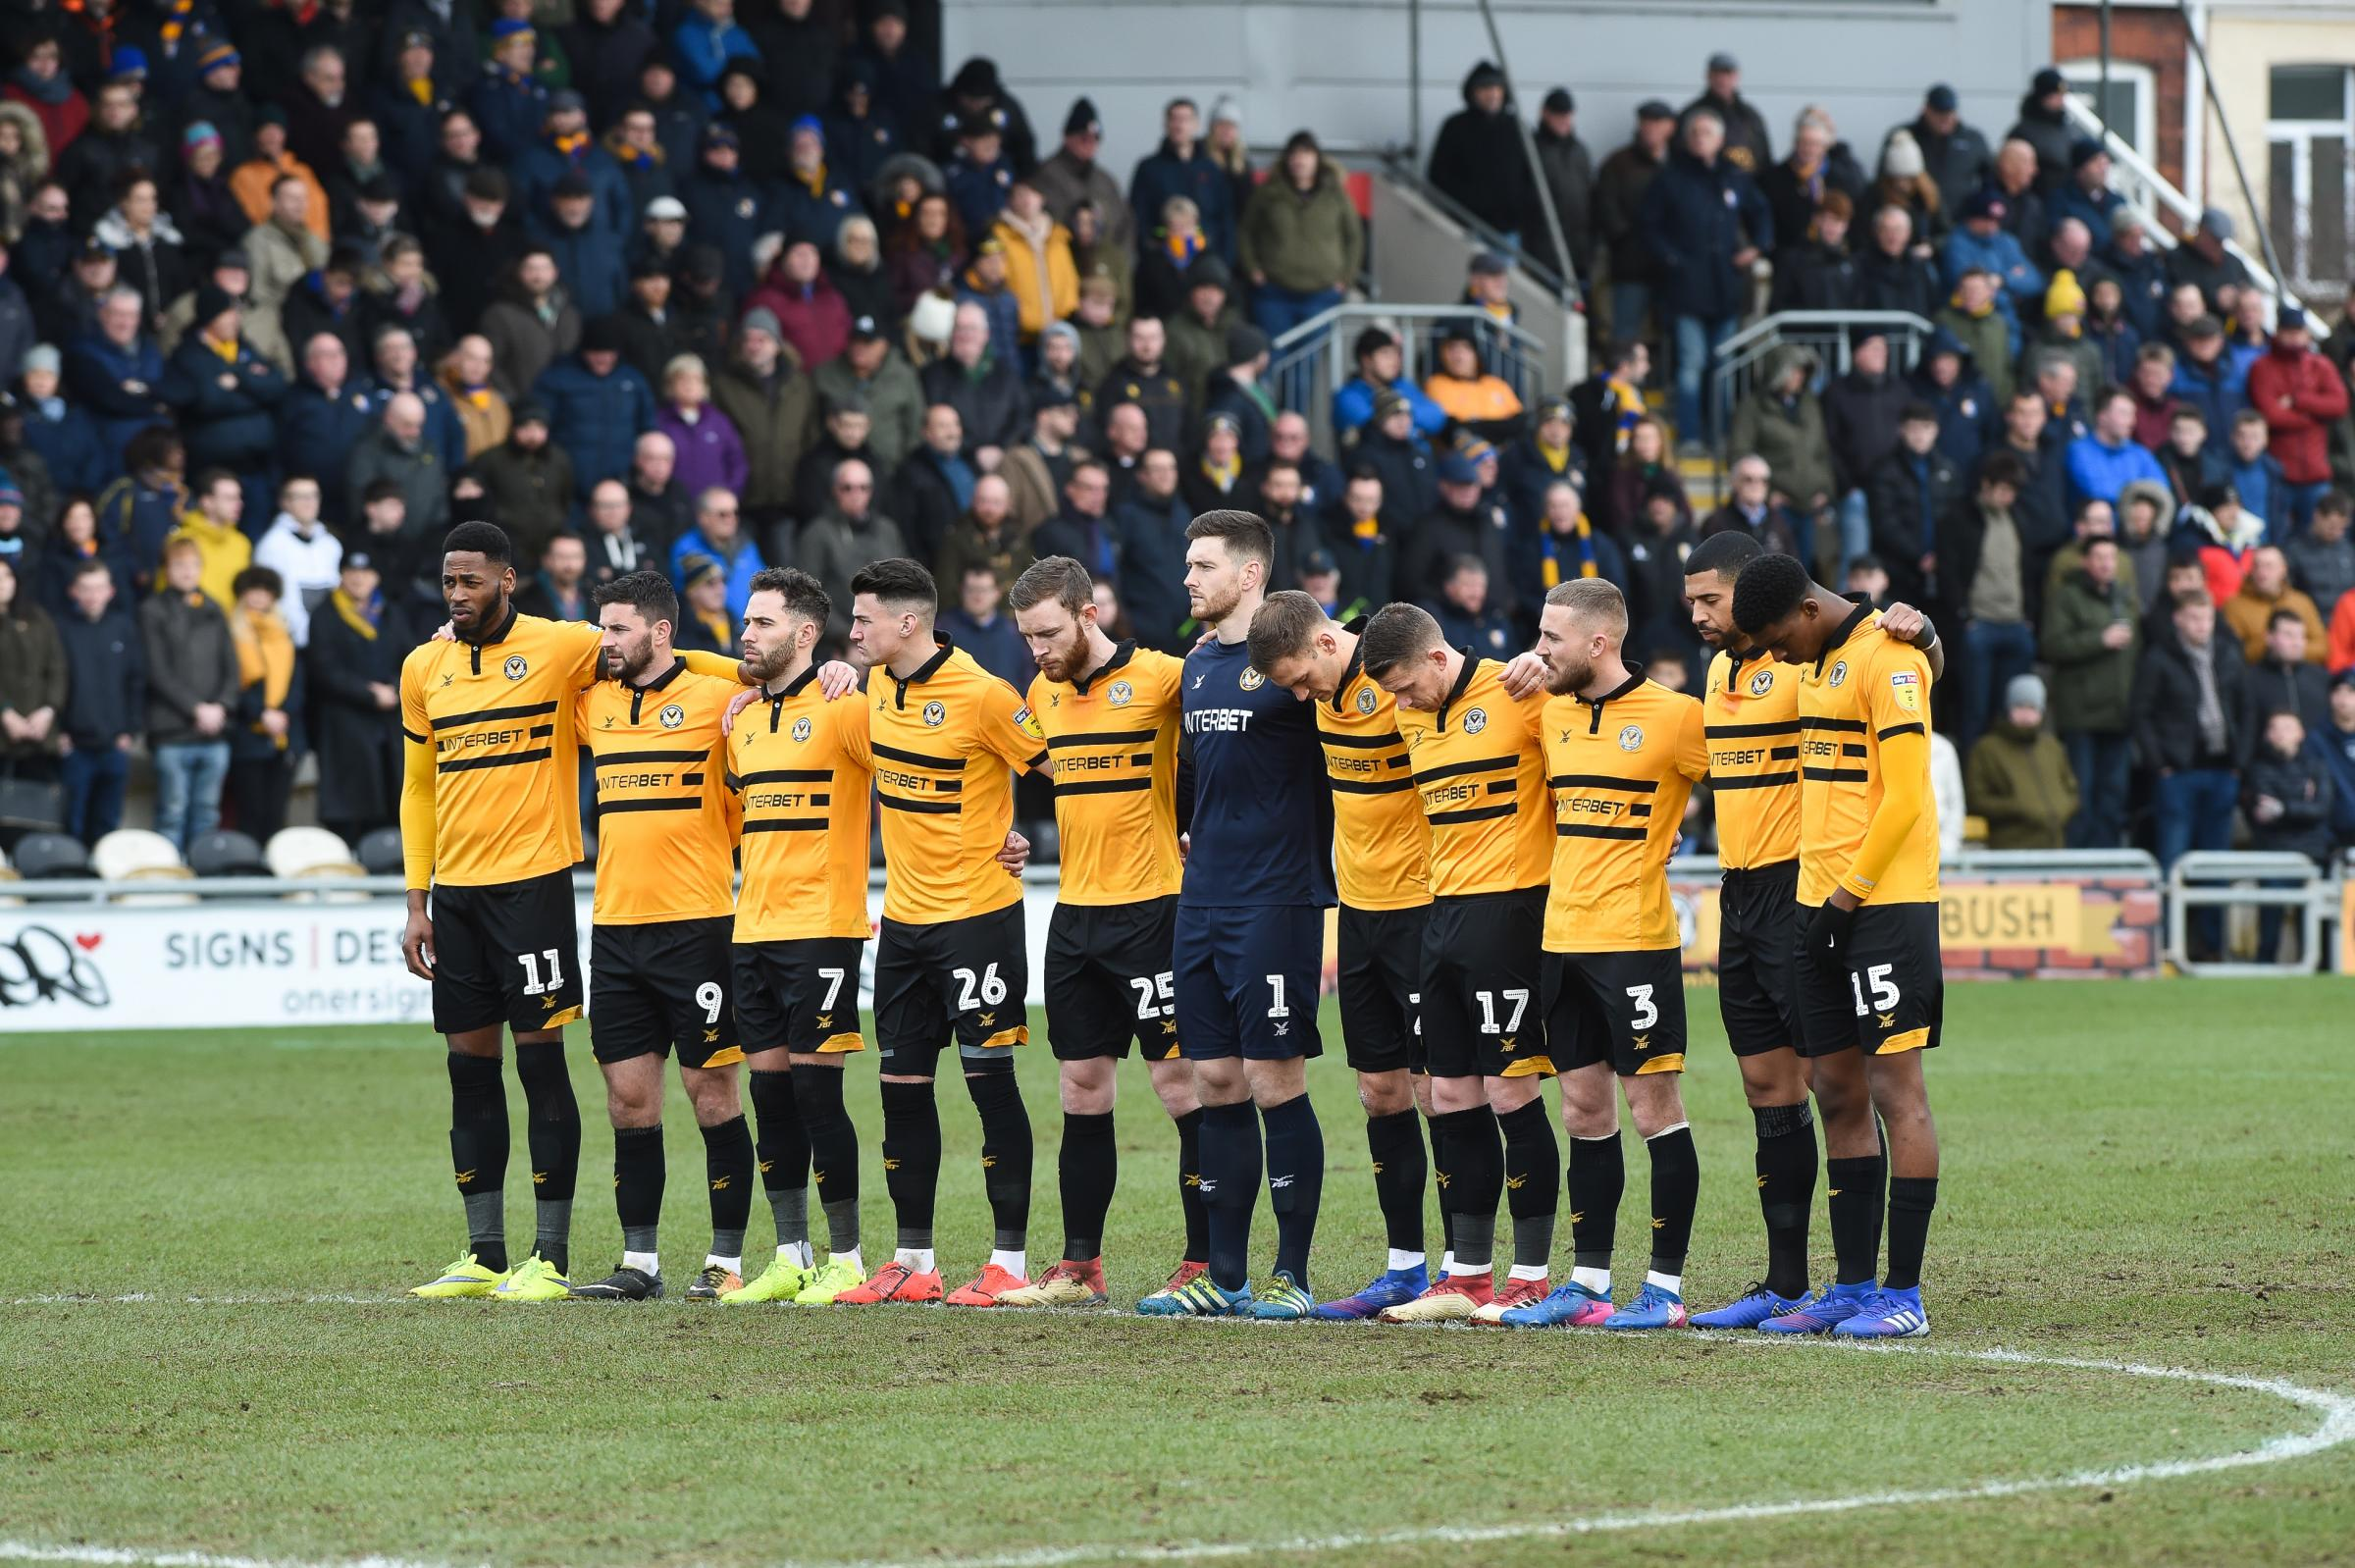 TOGETHER: Newport County will battle it out with Mansfield Town today for a place in the League Two play-off final at Wembley. Pictures: Huw Evans Agency